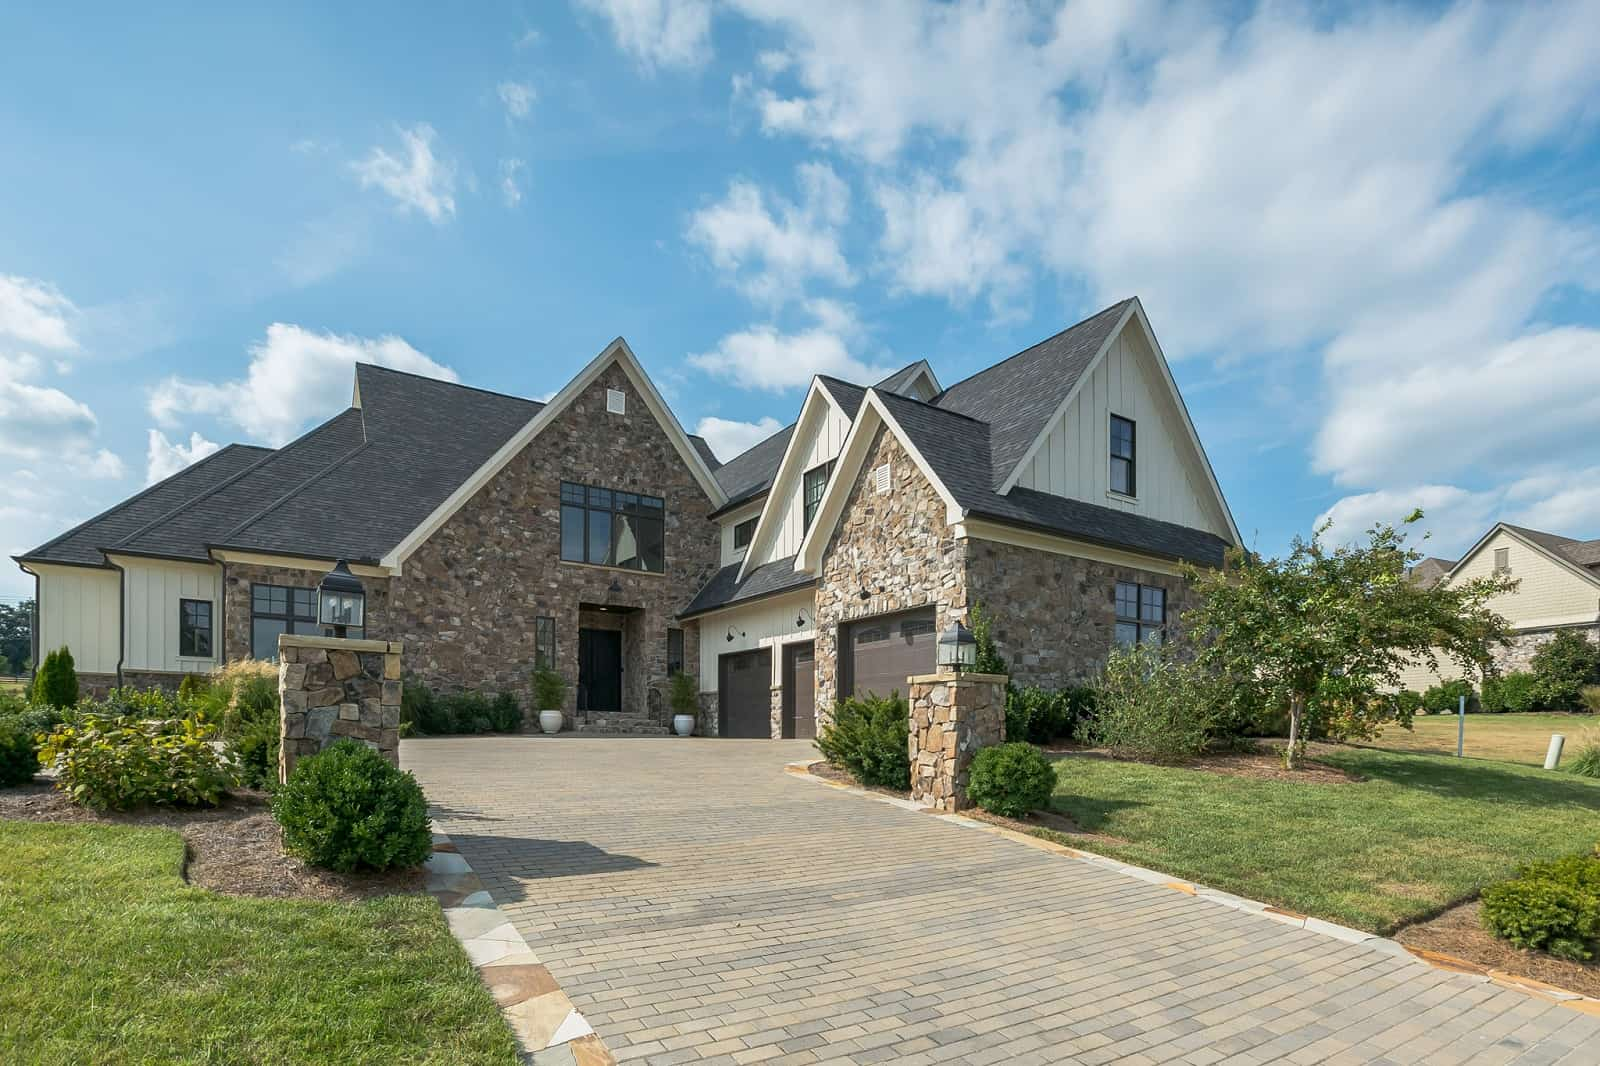 Real Estate Photography in Murfreesboro - TN - USA - Front View